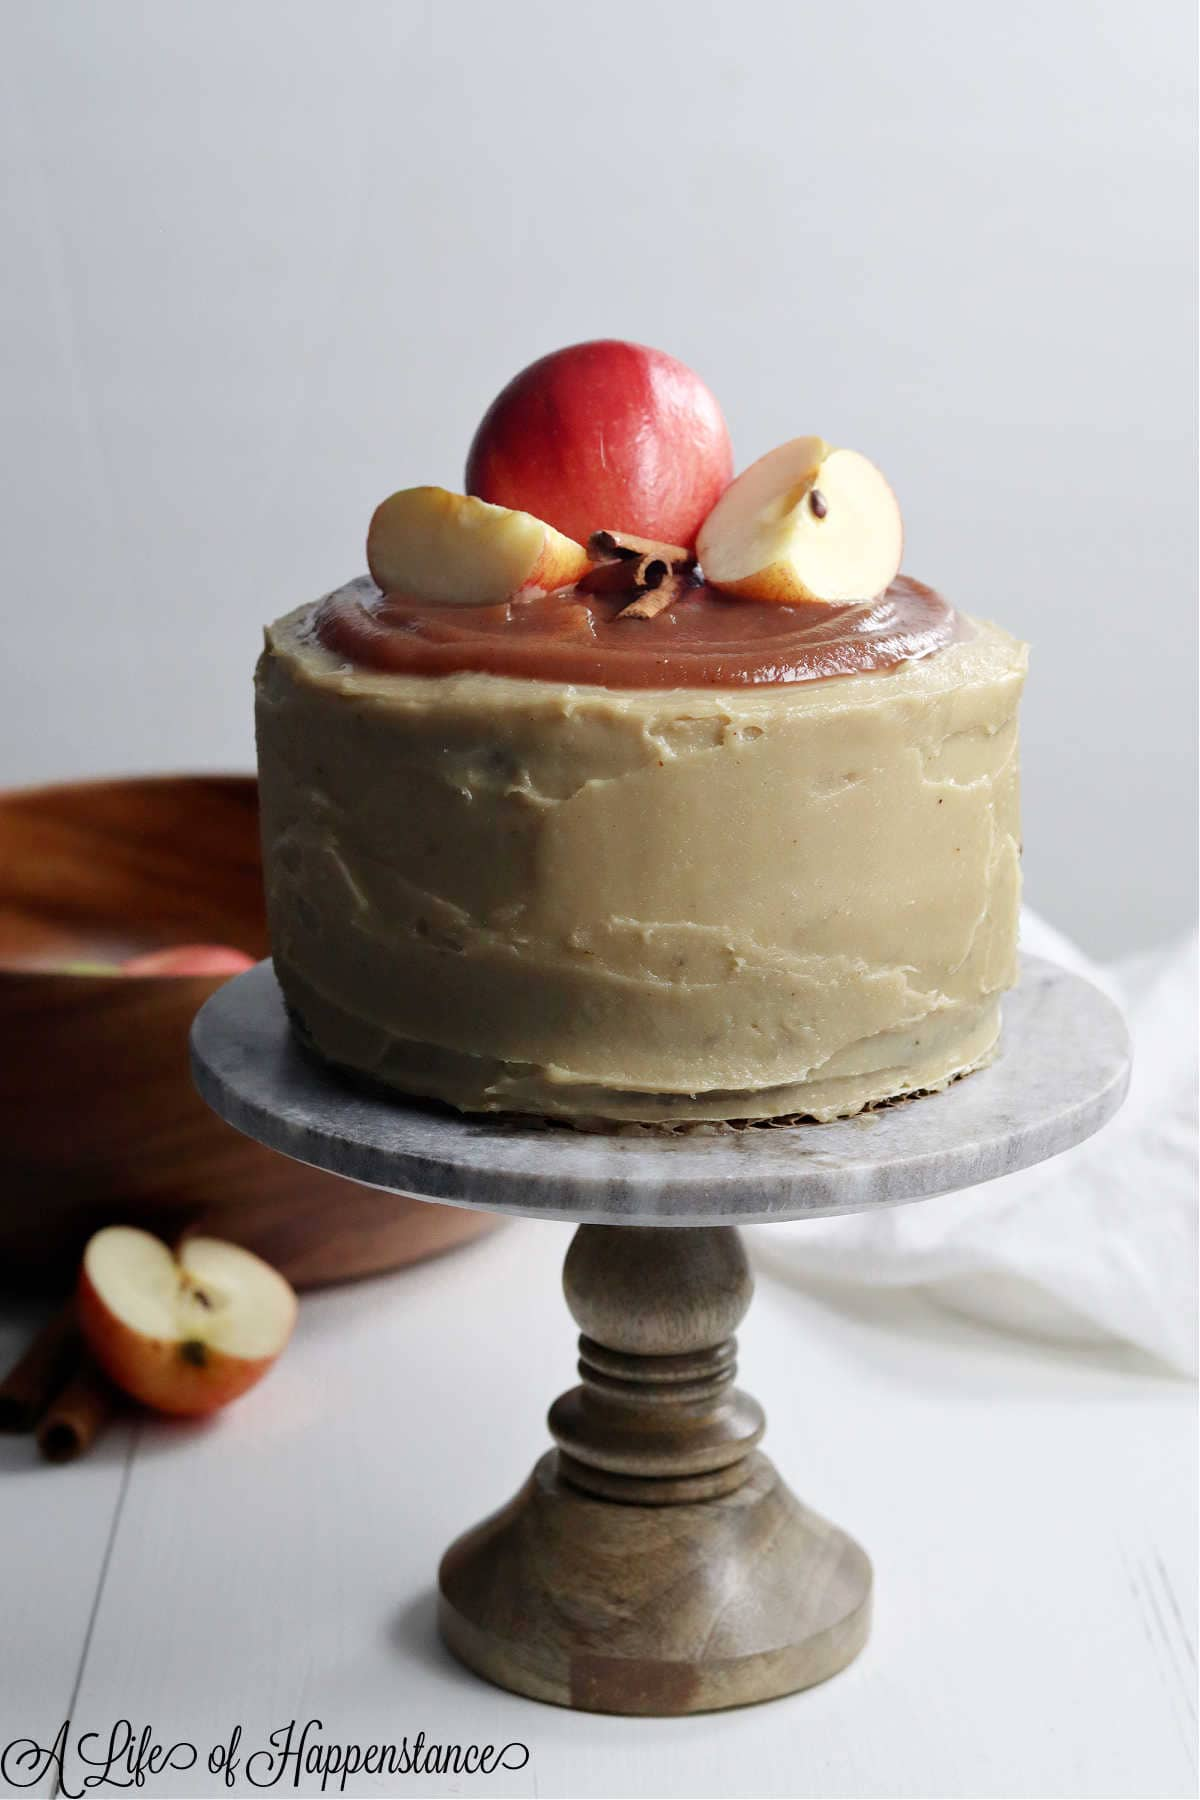 The apple cake on a cake stand with a wooden bowl filled with apples in the background.